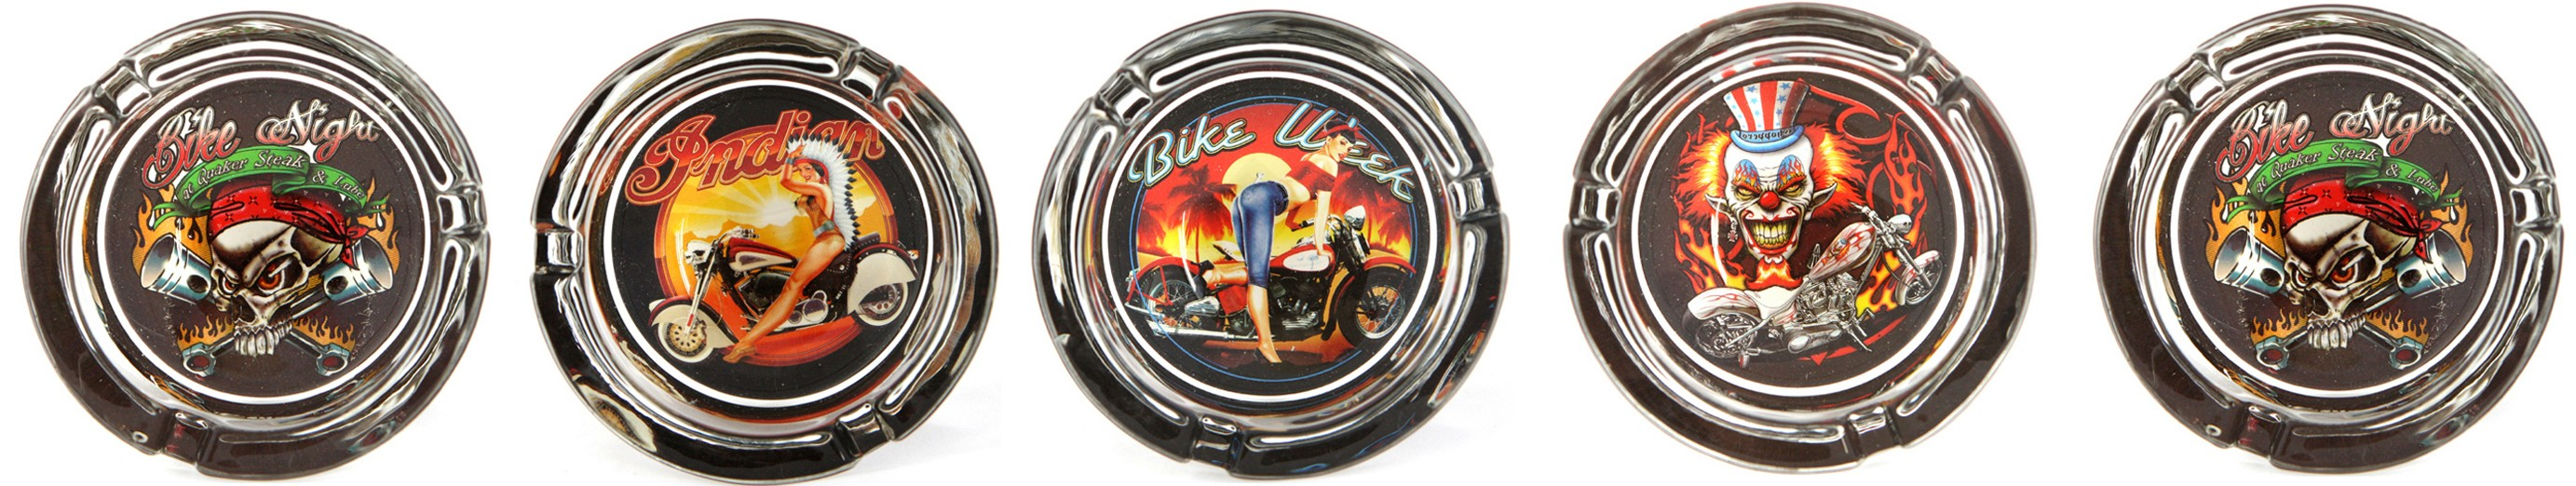 Biker Girl Ashtray